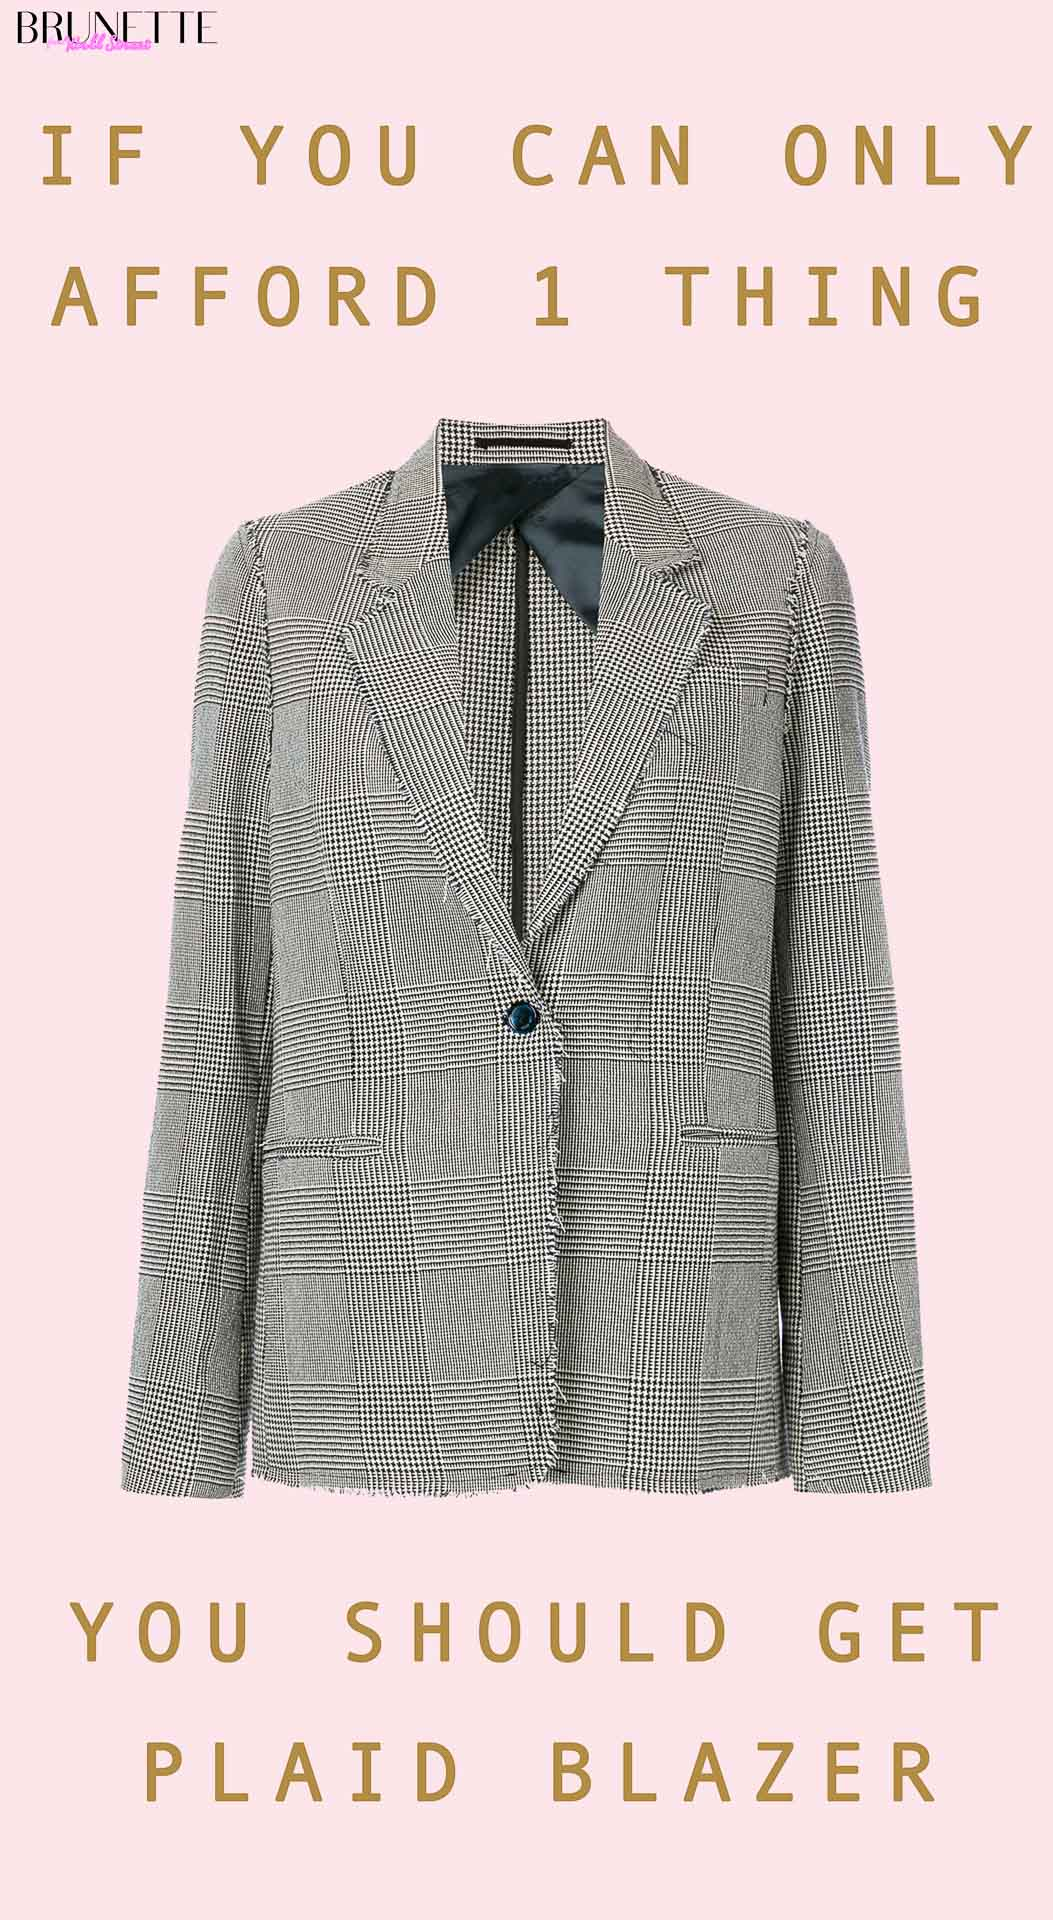 Grey plaid blazer with text overlay If you can only afford 1 hing you should get plaid blazer